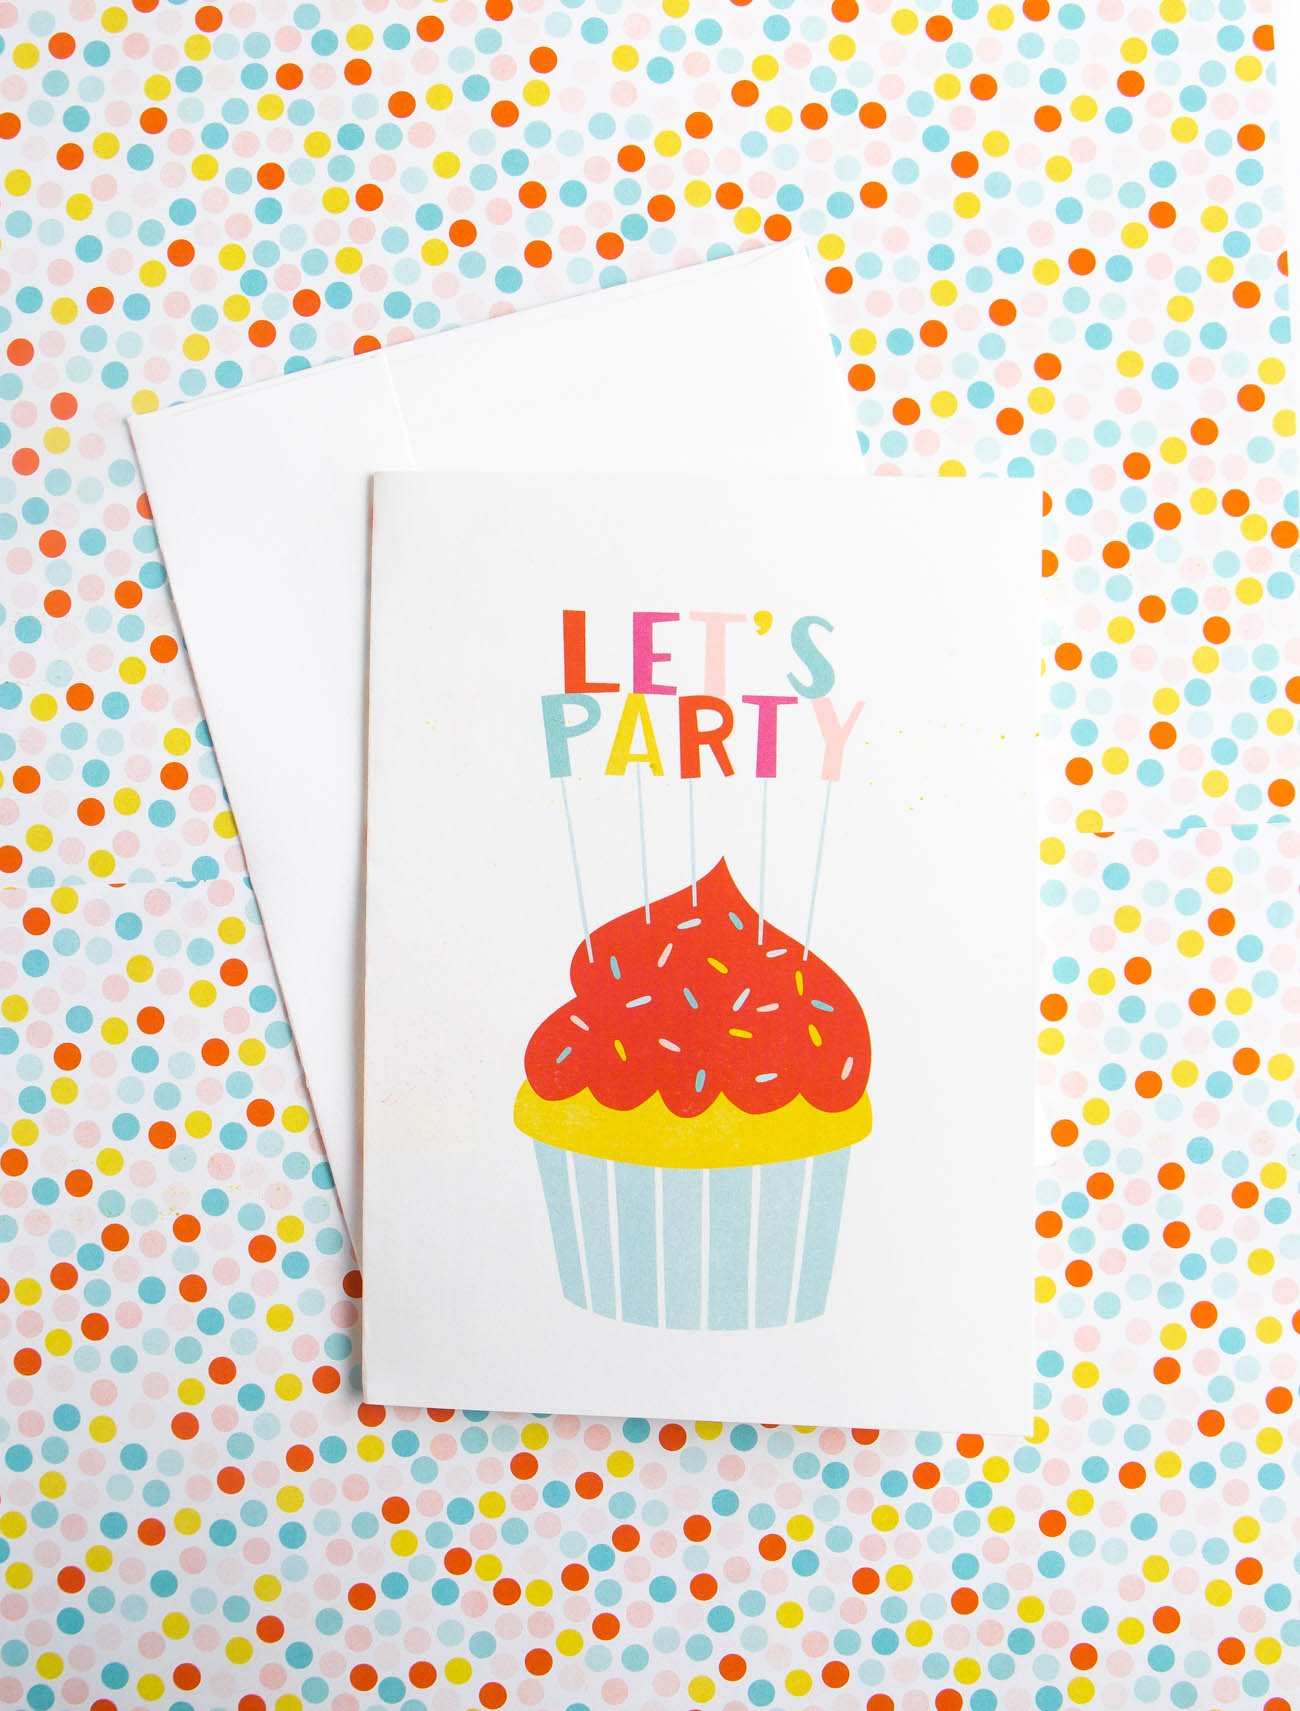 photograph relating to Cupcake Printable titled Cupcake Printable Birthday Card - Layout Consume Repeat